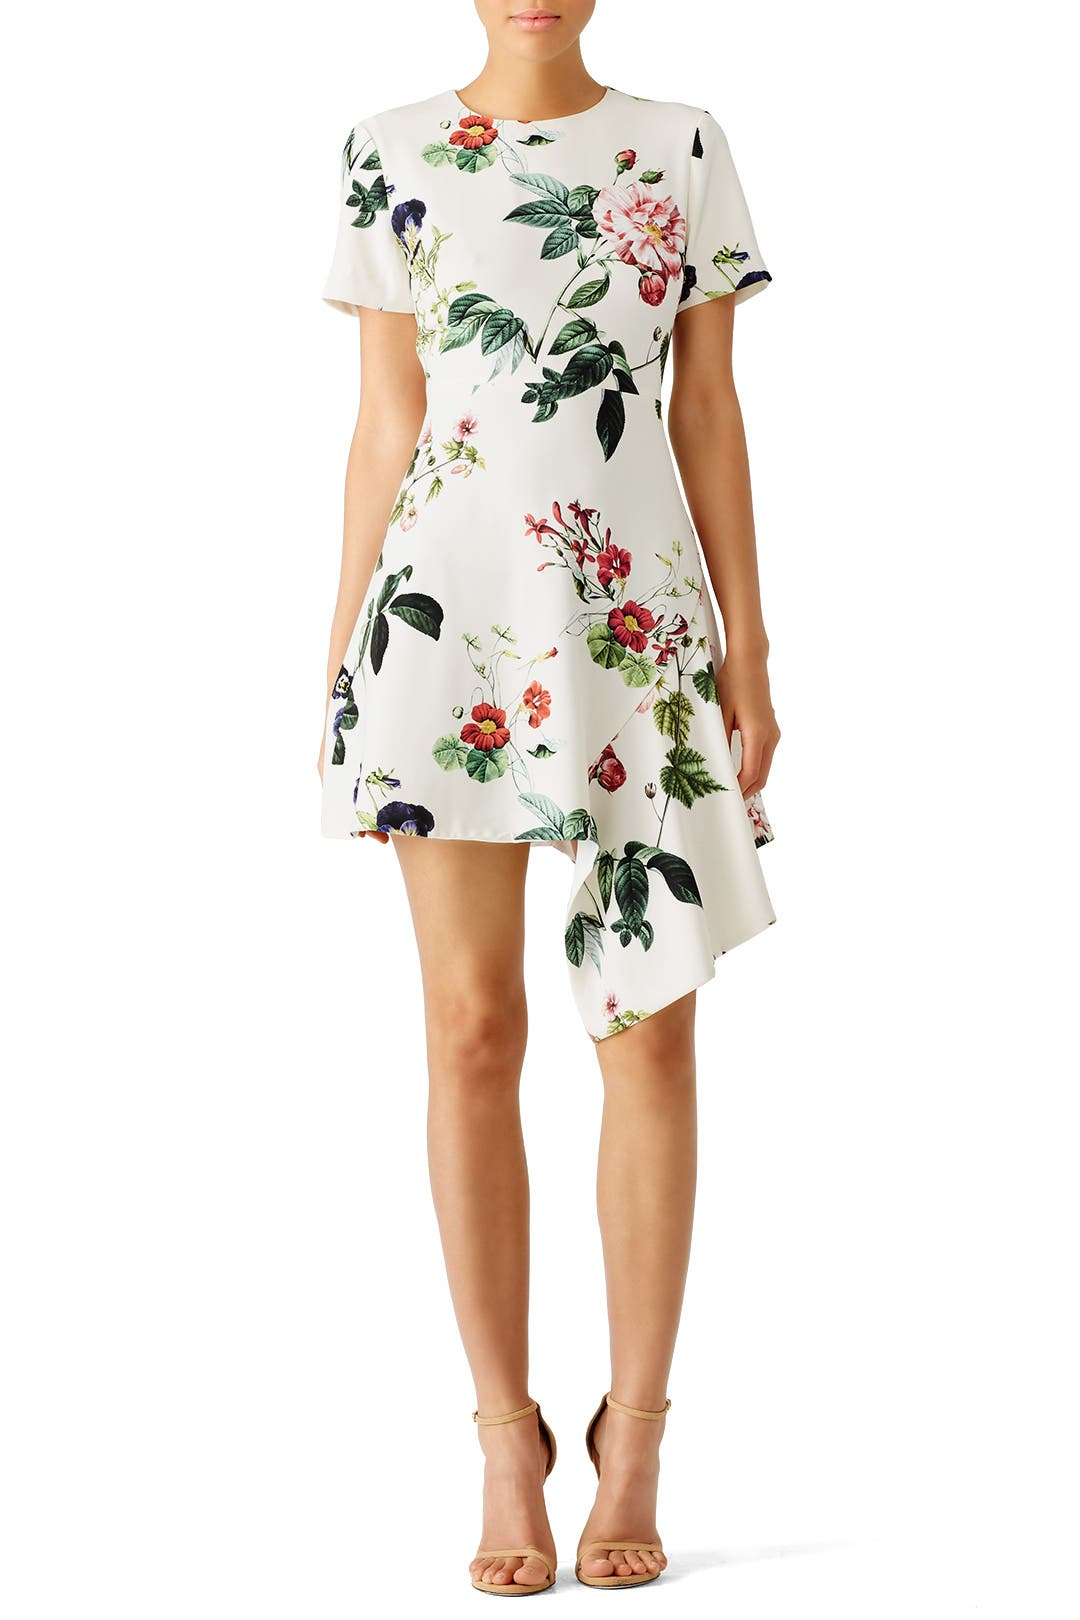 Garden Floral Asymmetrical Dress by STYLESTALKER for $30 - $35 ...